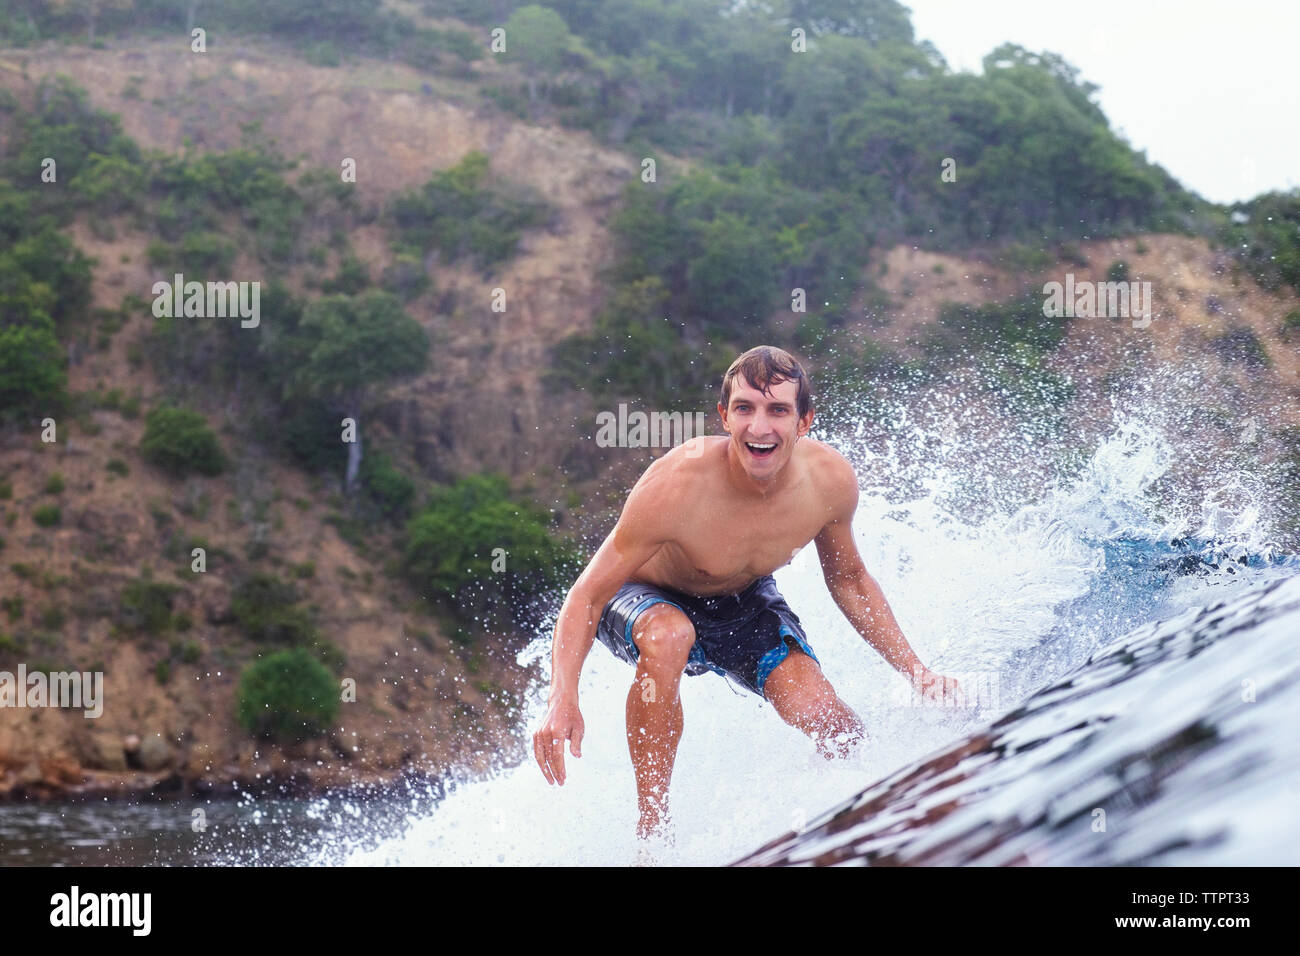 Cheerful man surfing on sea - Stock Image